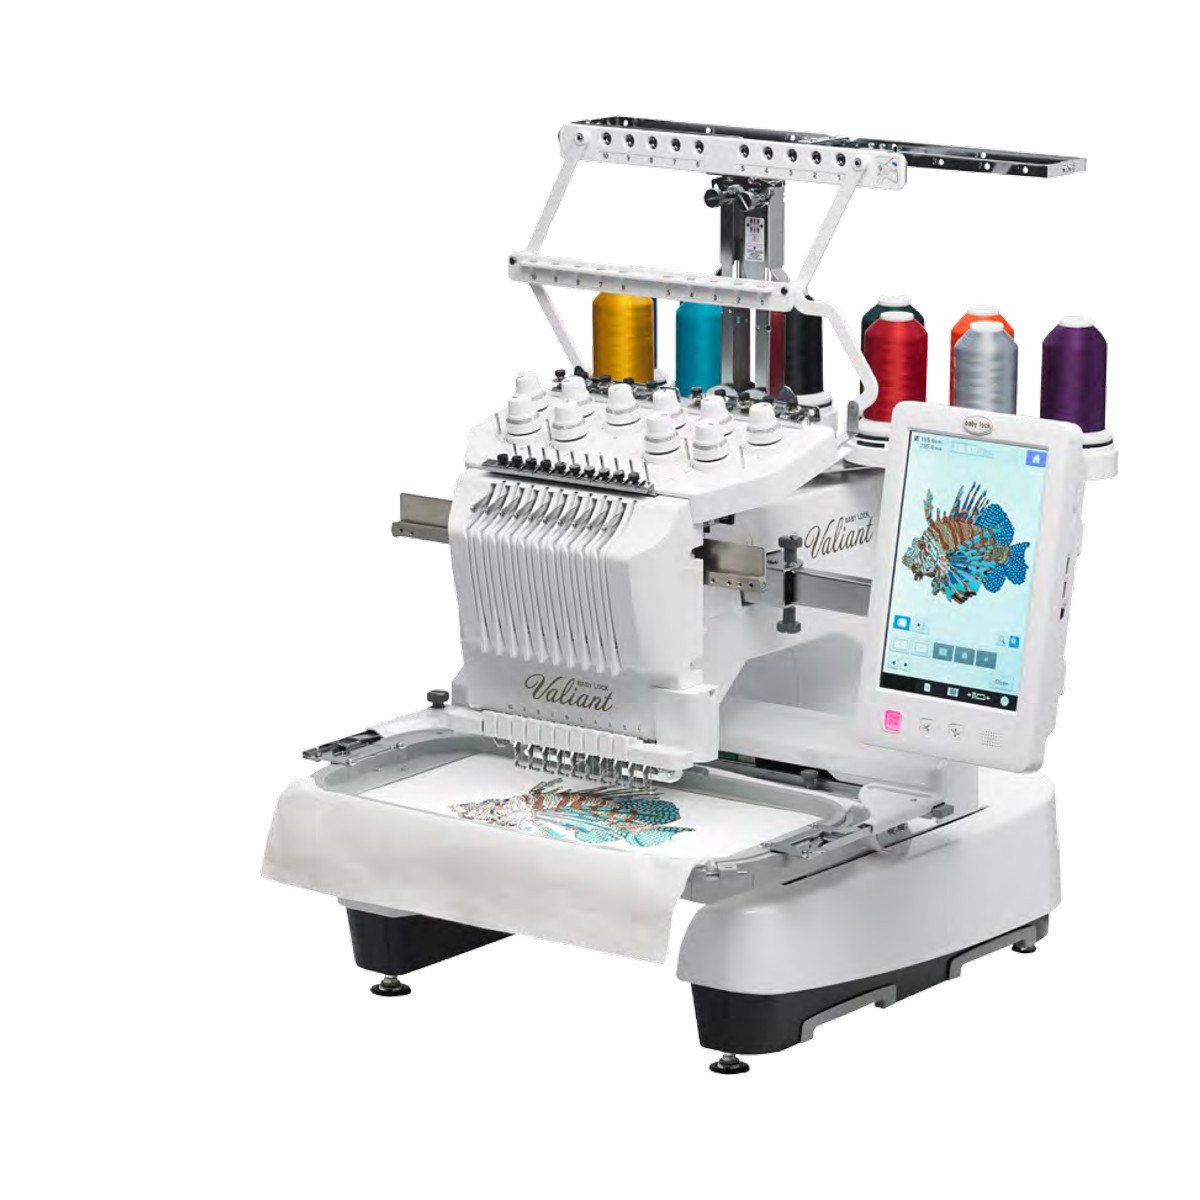 Lovely Baby Lock Valiant 10 Needle Embroidery Machine Meissner Embroidery Only Machines Of Perfect 49 Pics Embroidery Only Machines